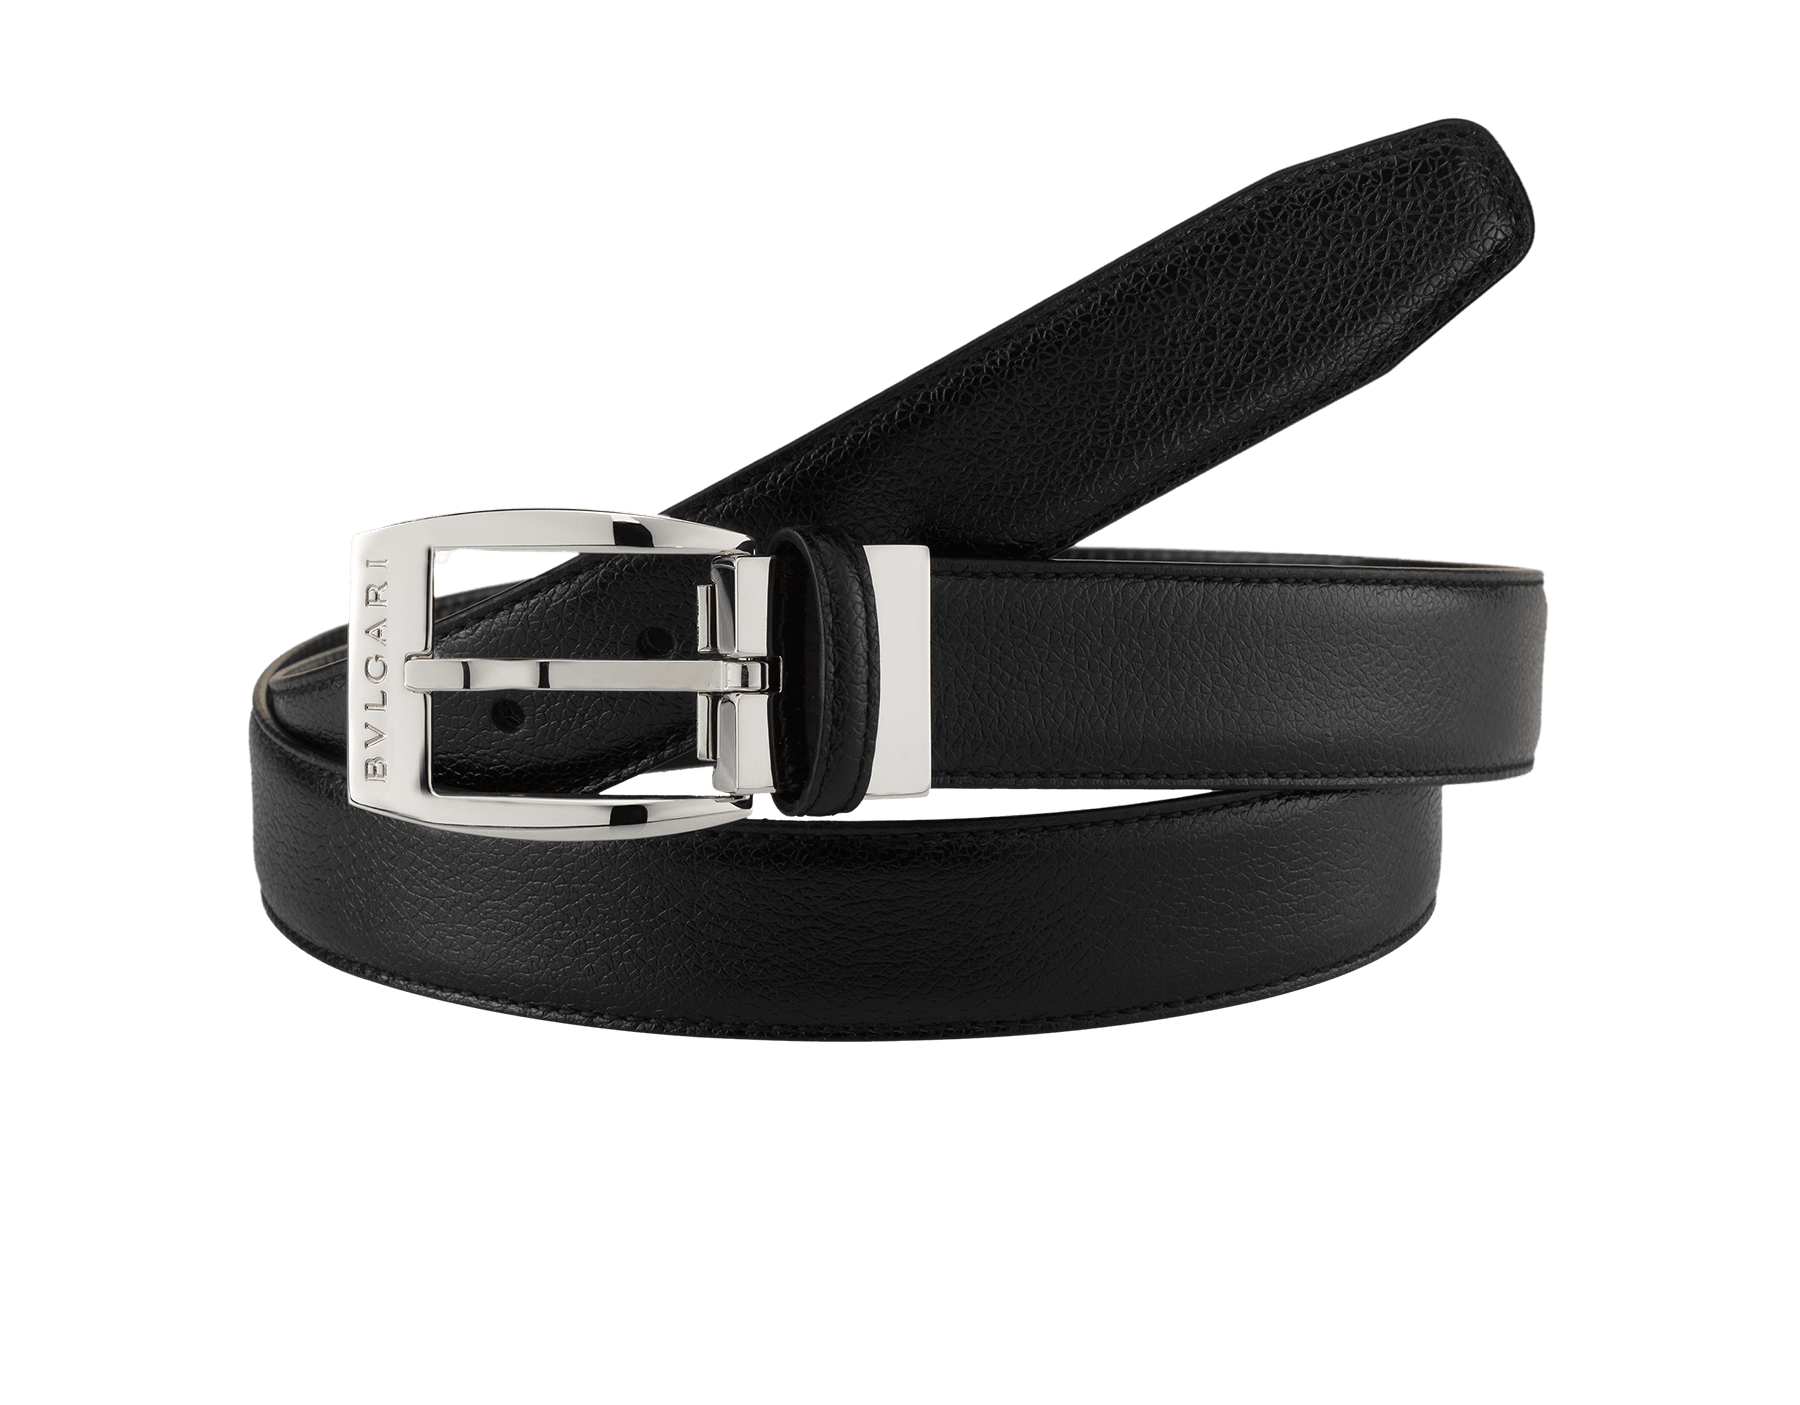 Black country calf leather belt for men with Ellipse closure in brass palladium plated hardware. Also available in other colors and materials. 43.3x1.2 (110x3 cm) ELLIPSE-CCL image 1